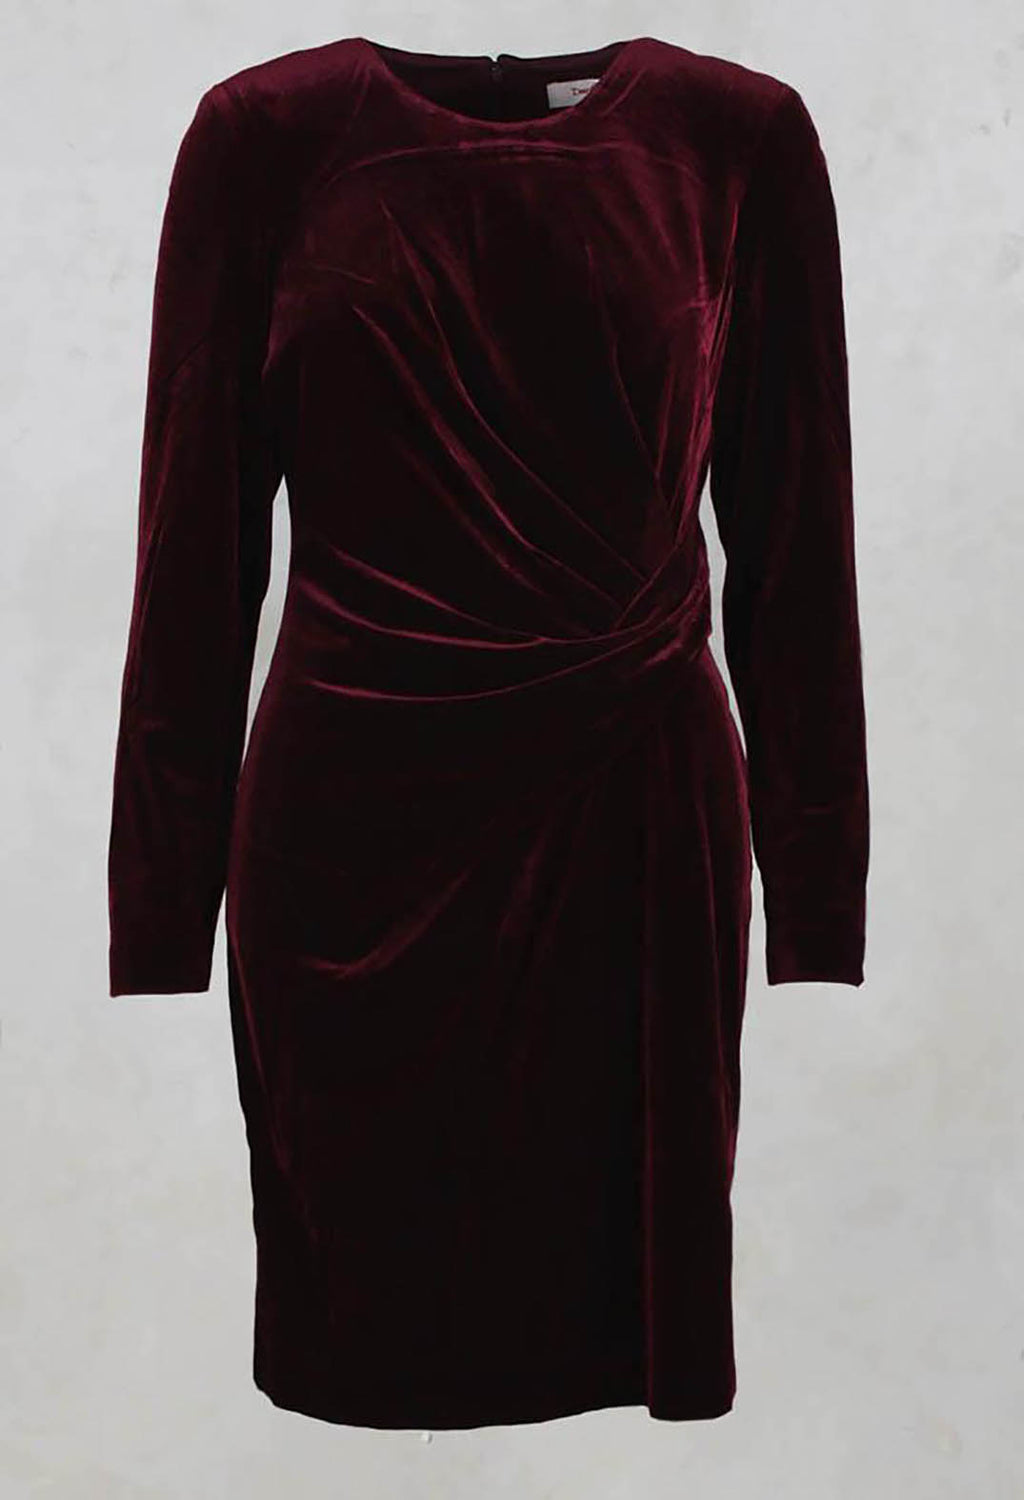 Balneaire Velvet Dress in Bordeaux